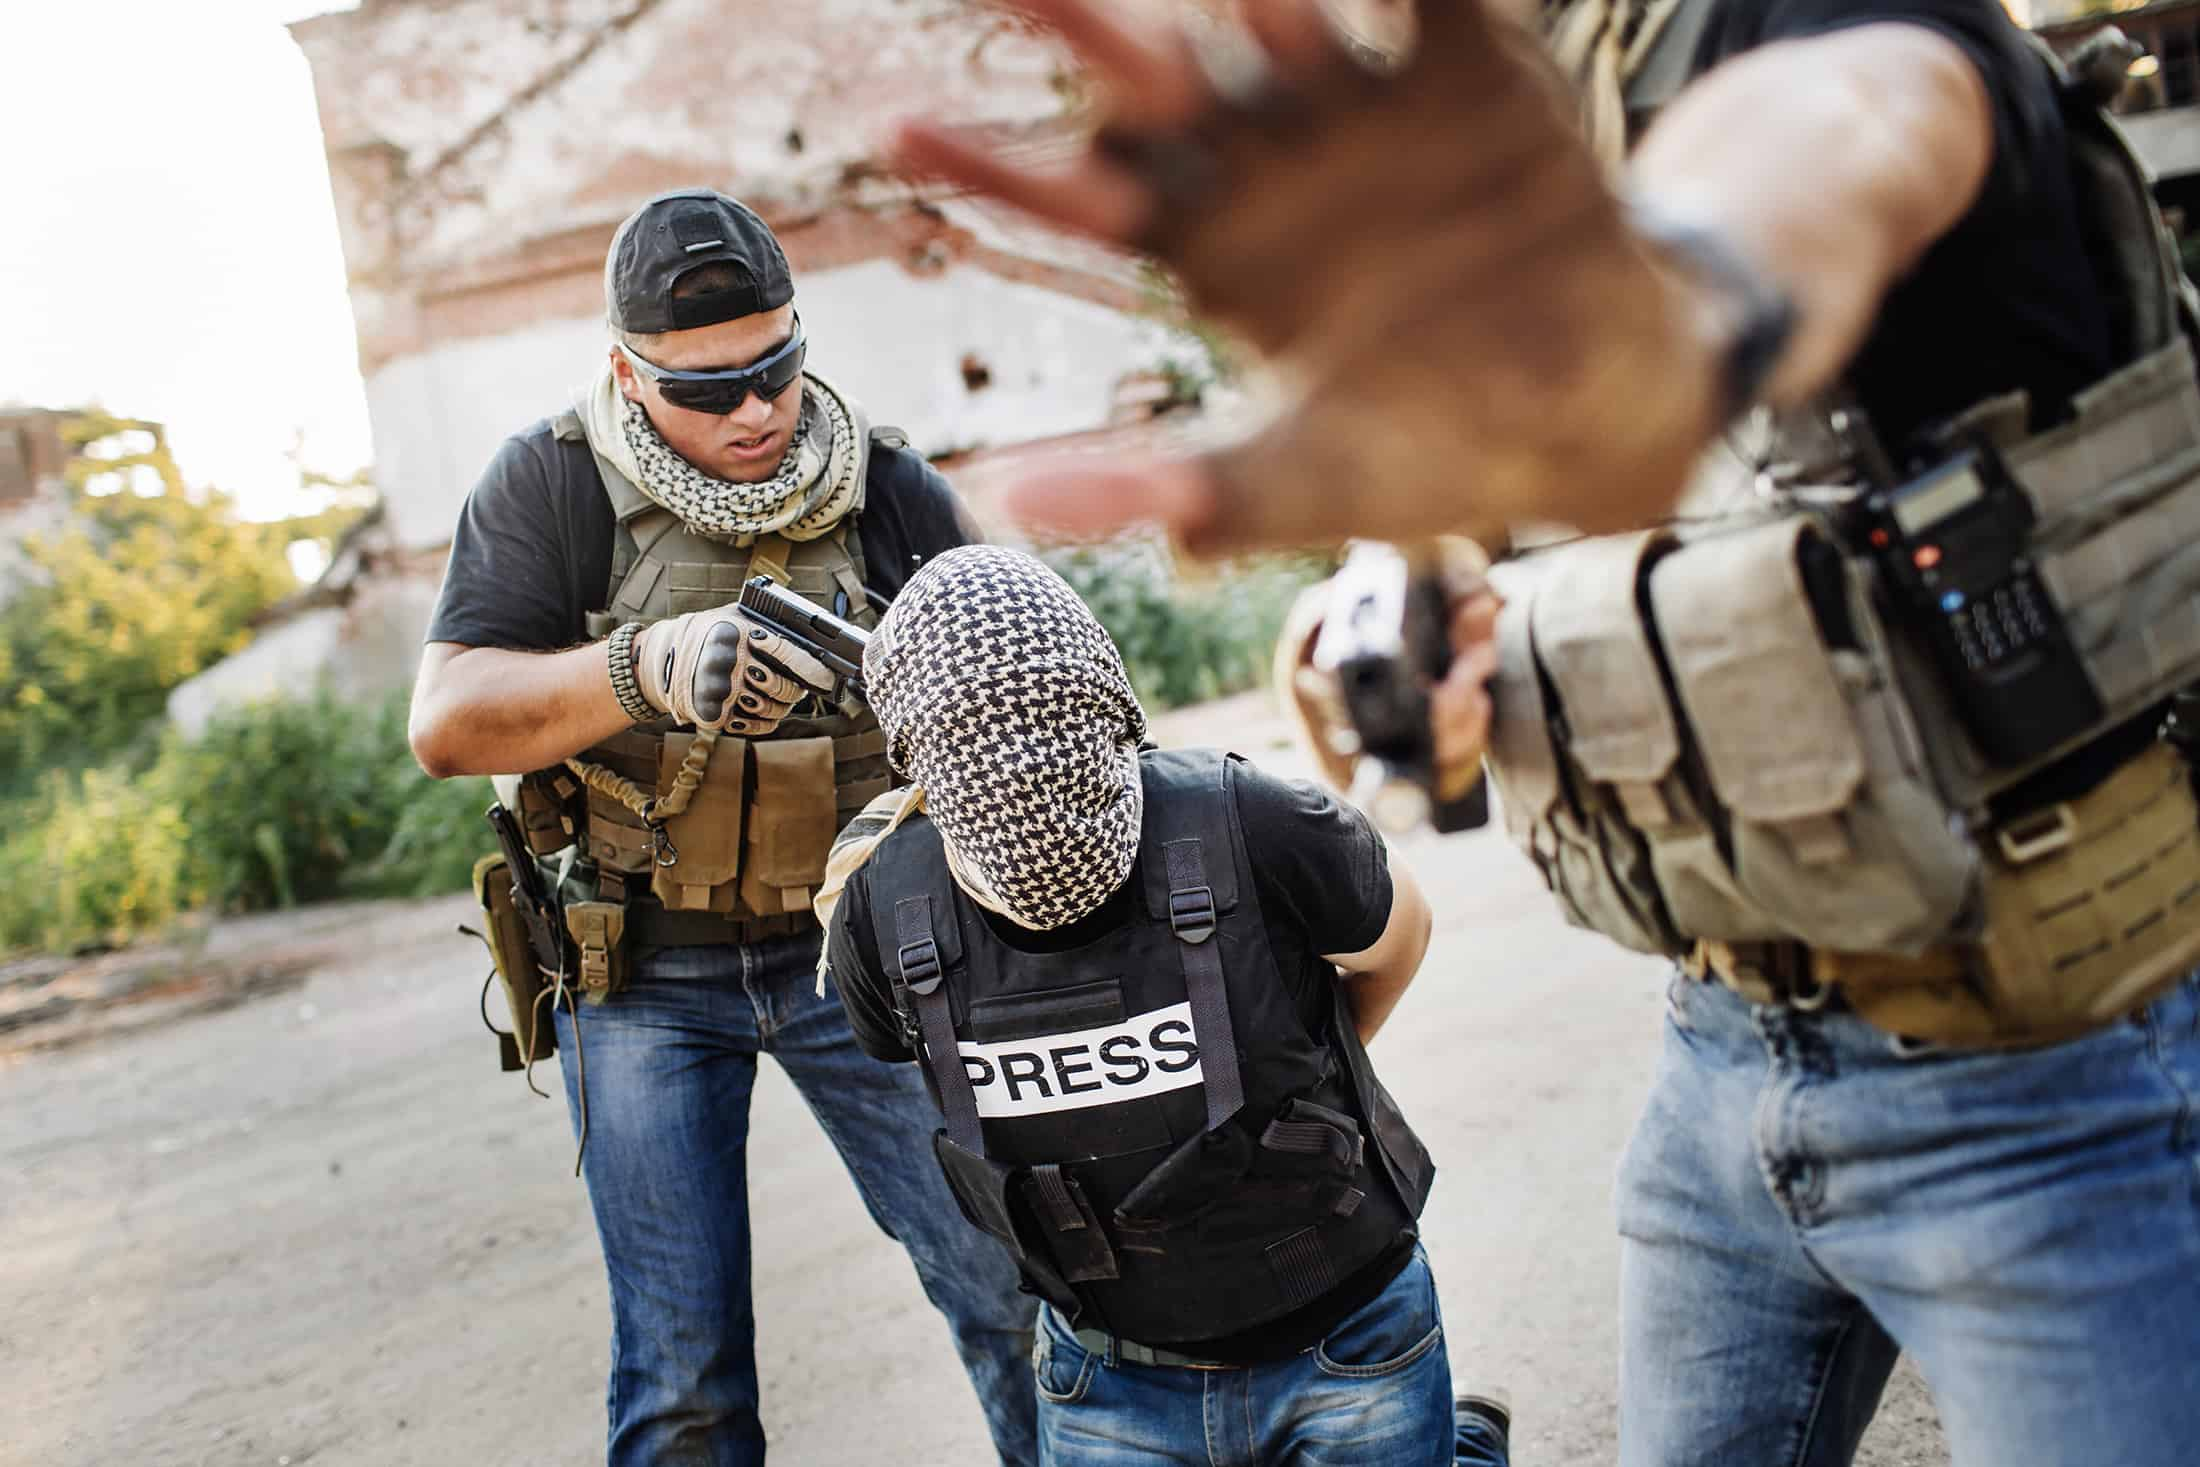 A global call to defend independent journalism